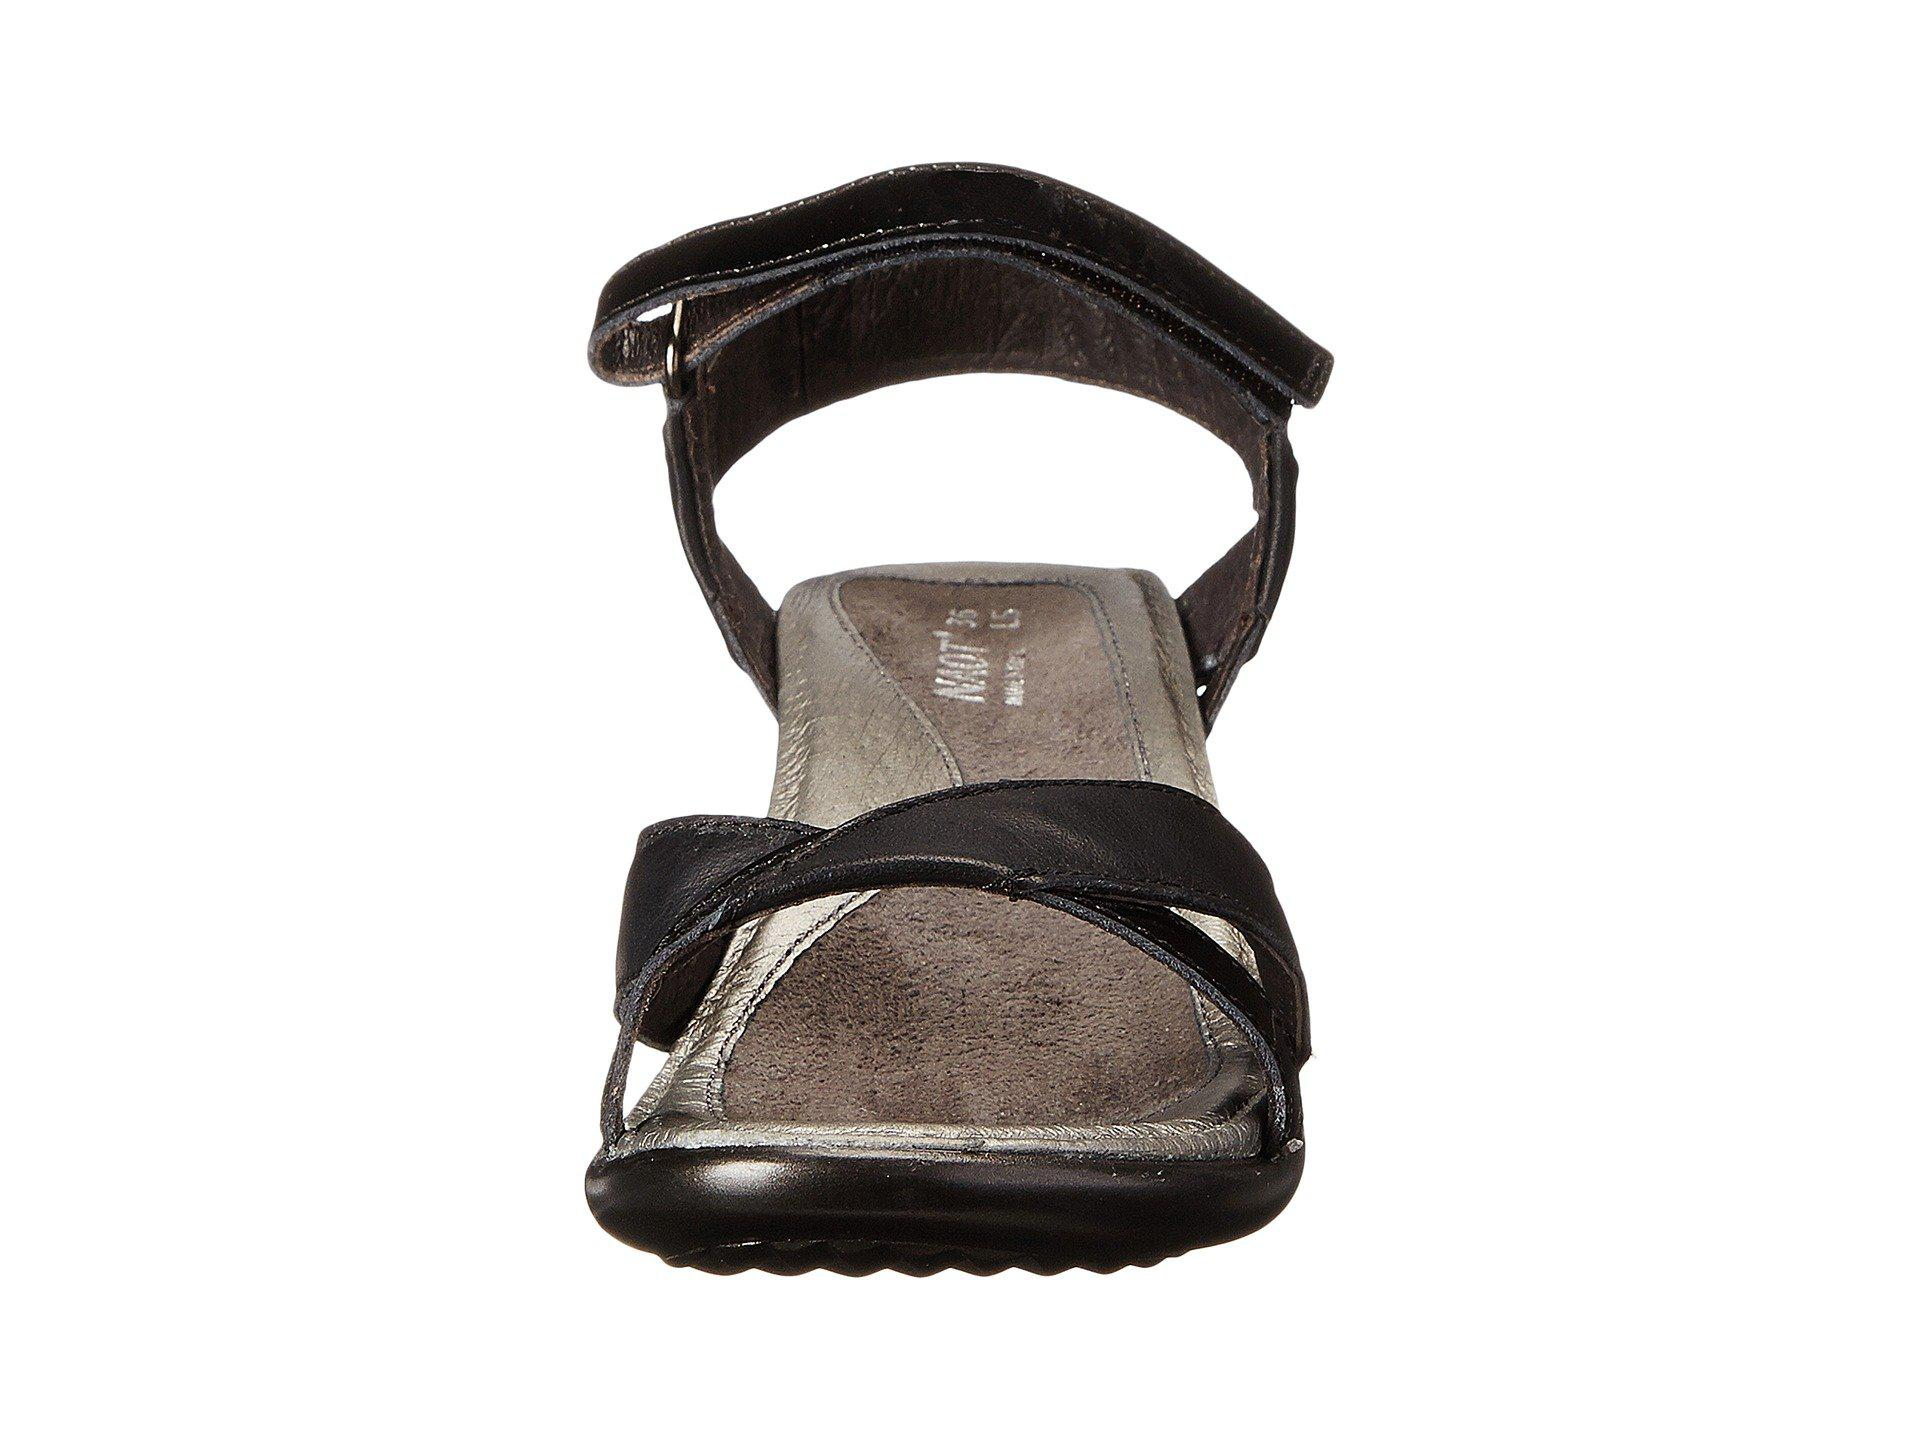 12899ba1f2d9 Naot - Black Cheer (sterling Leather mirror Leather) Women s Dress Sandals  - Lyst. View fullscreen